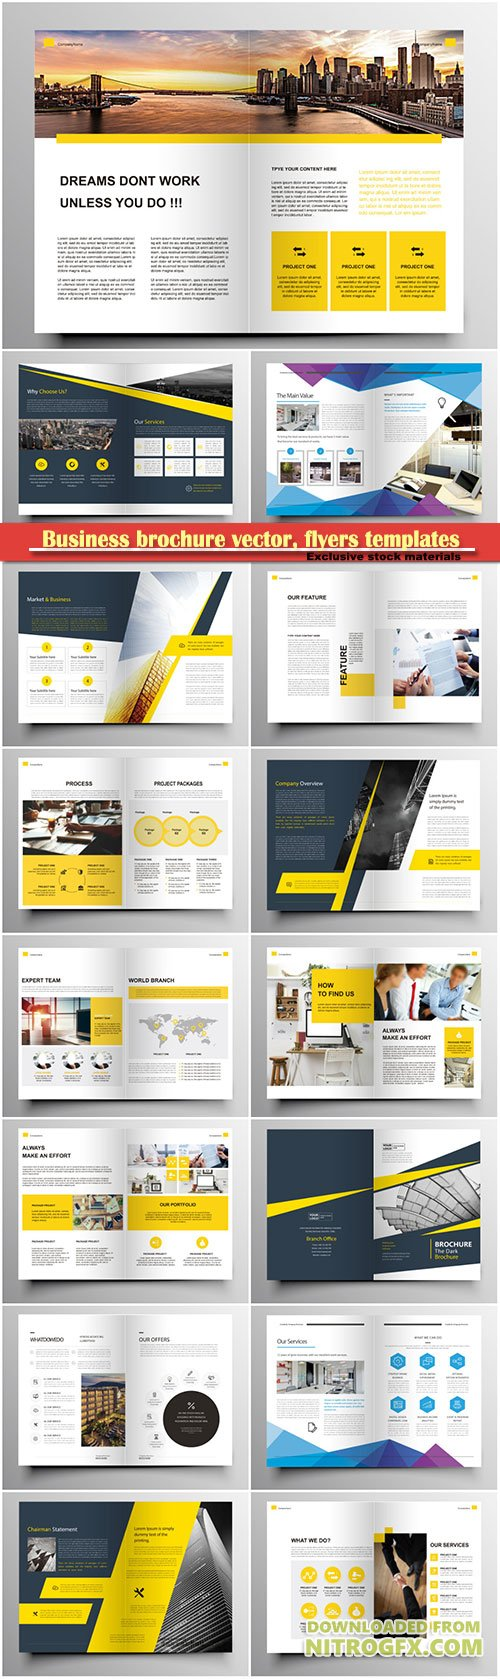 Business brochure vector, flyers templates, report cover design # 96